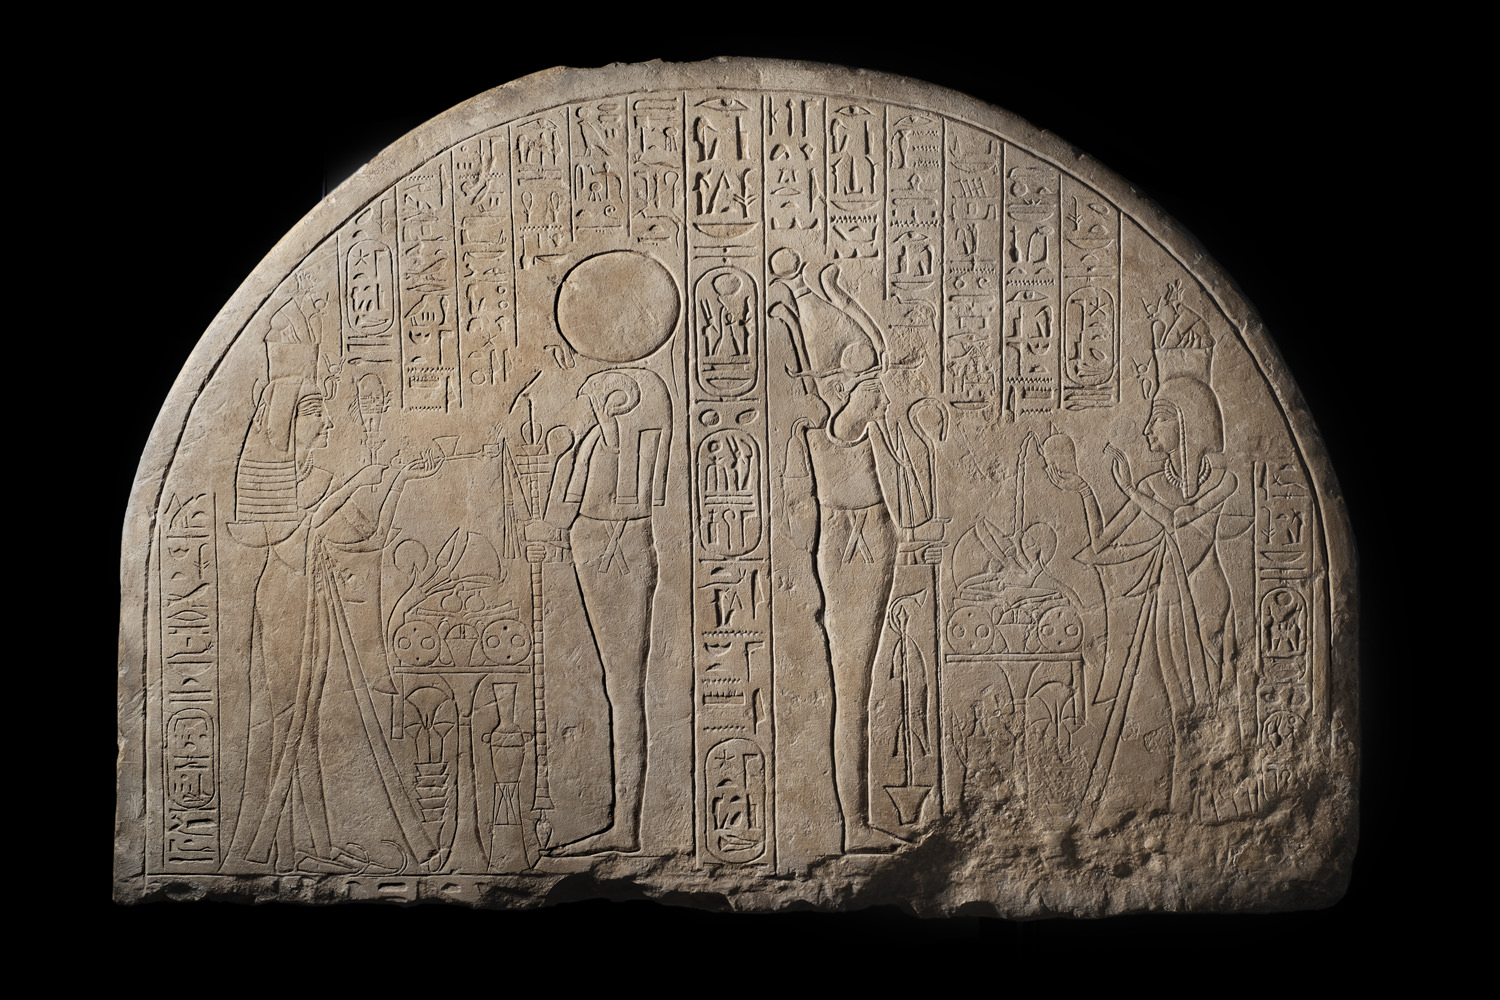 an ancient egyptian inscribed stela with hieroglyphs